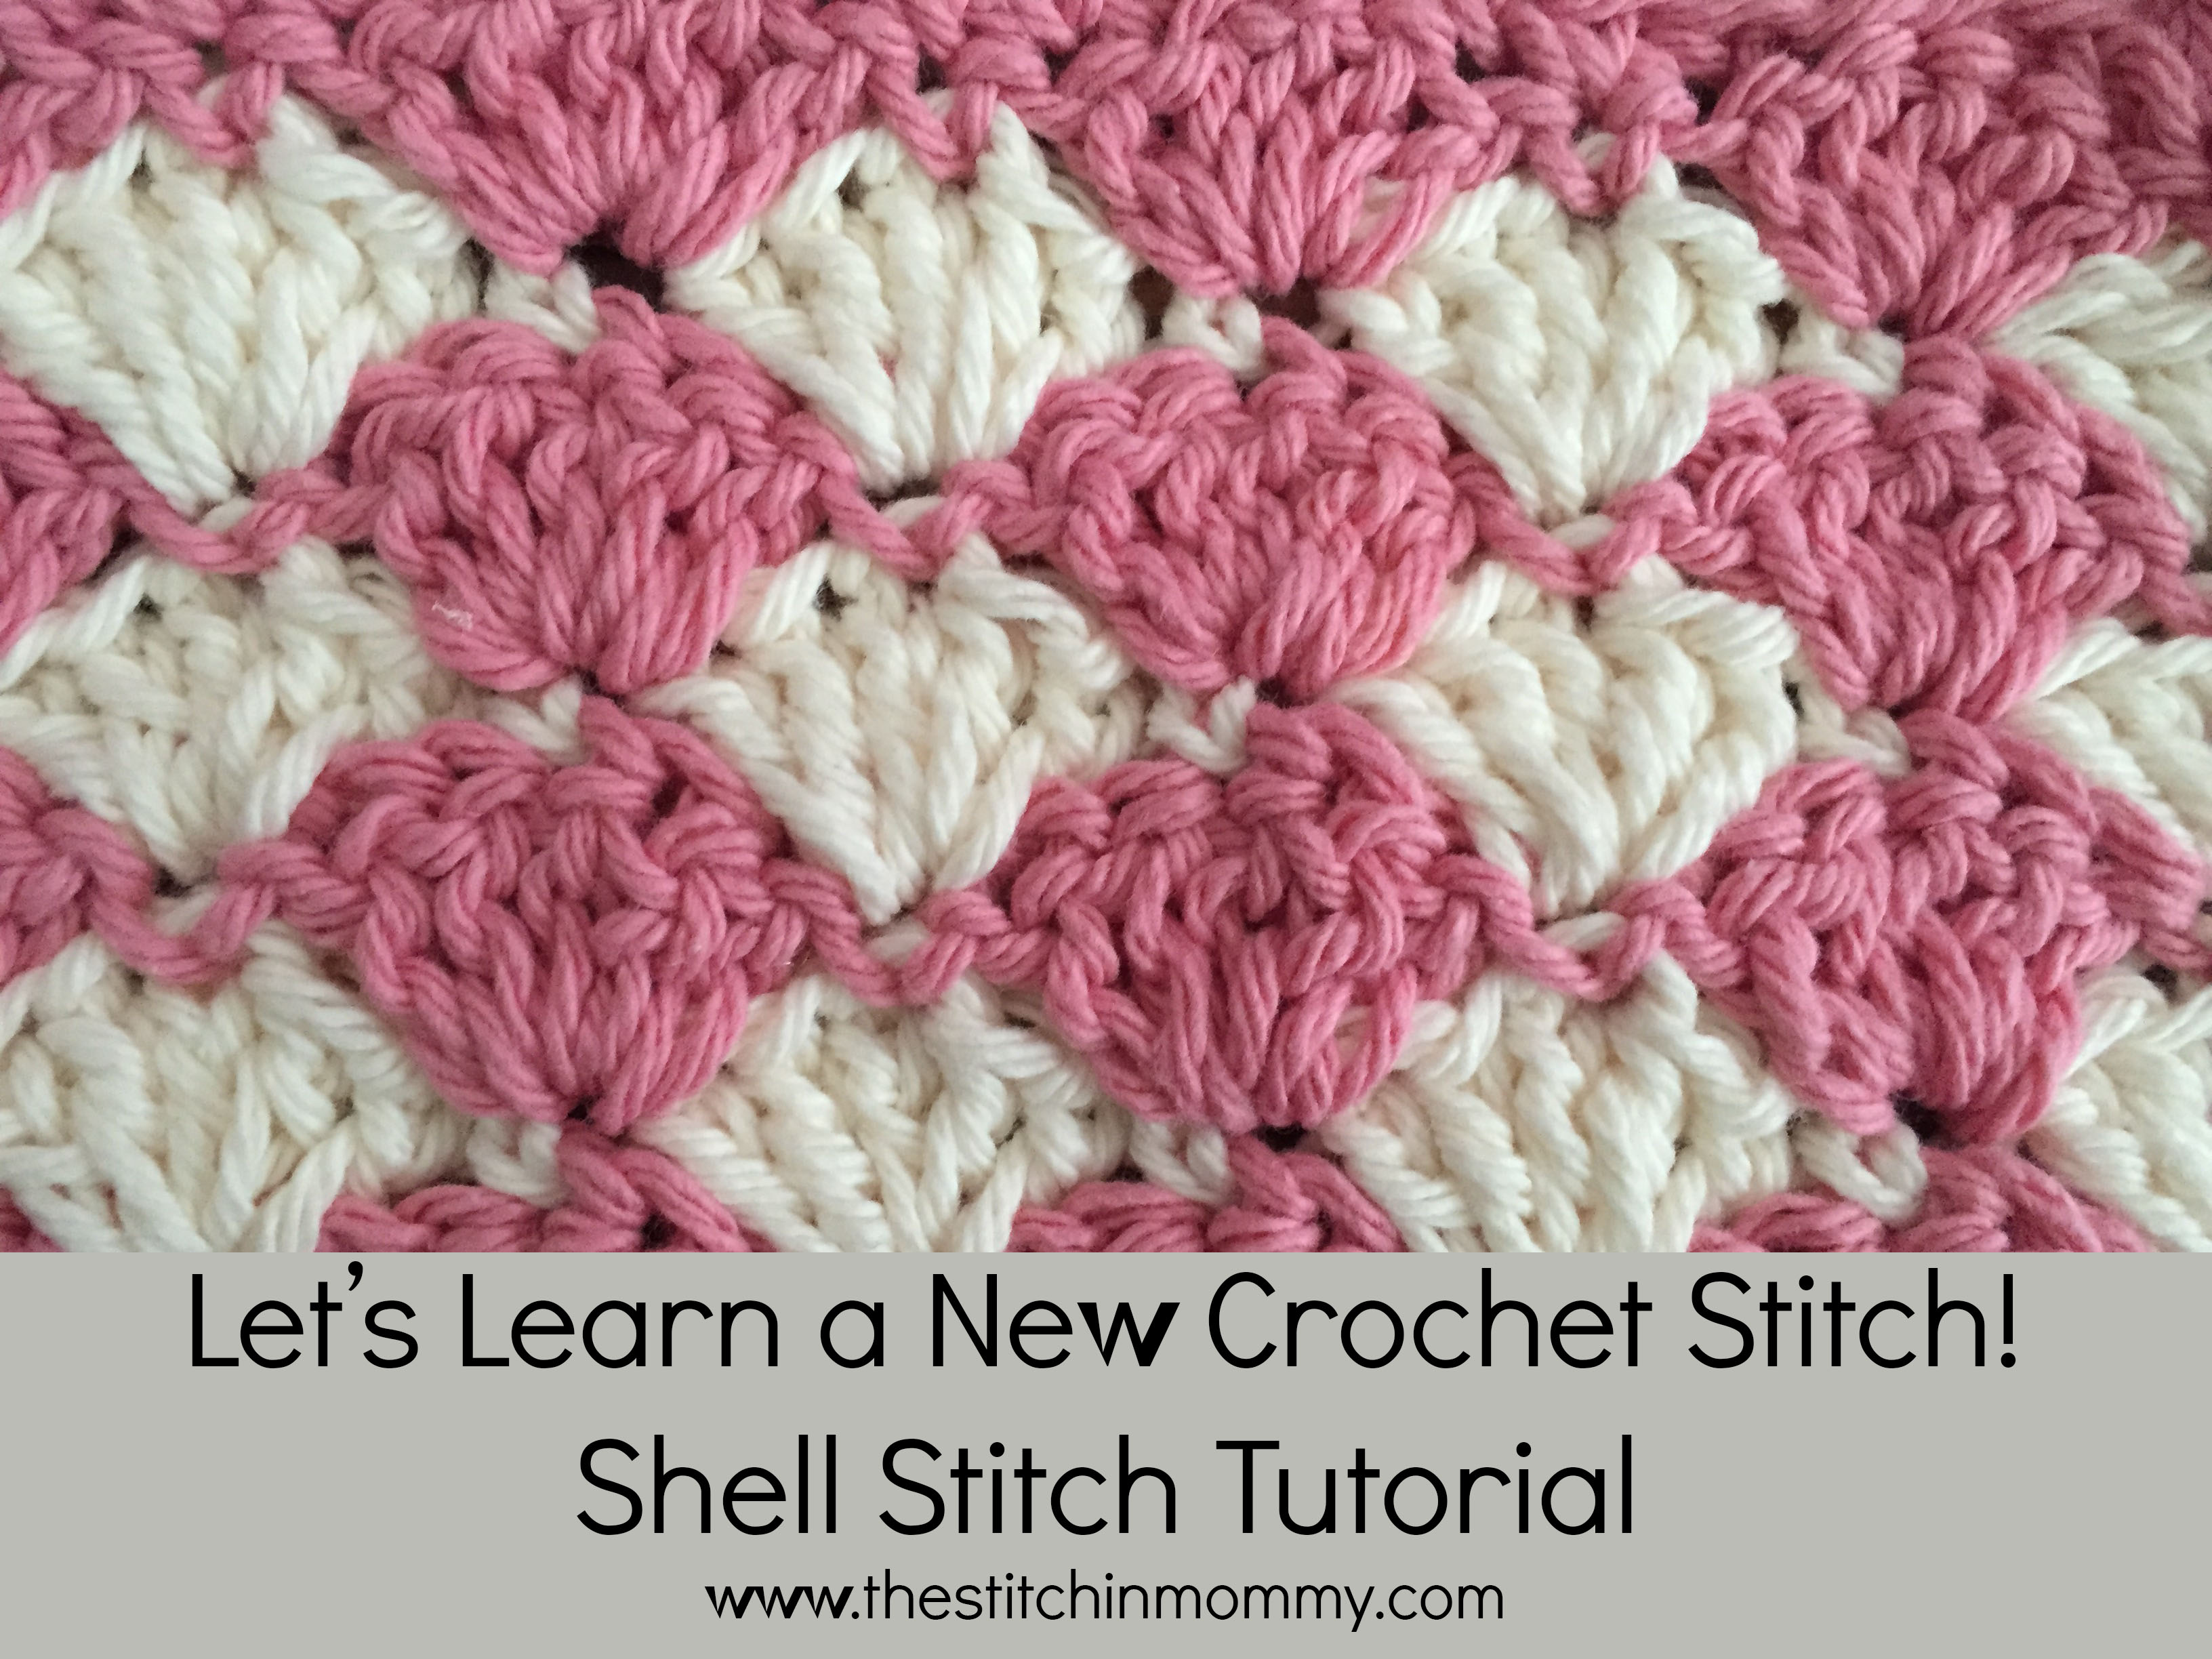 Lets Learn a New Crochet Stitch - Shell Stitch Tutorial www ...